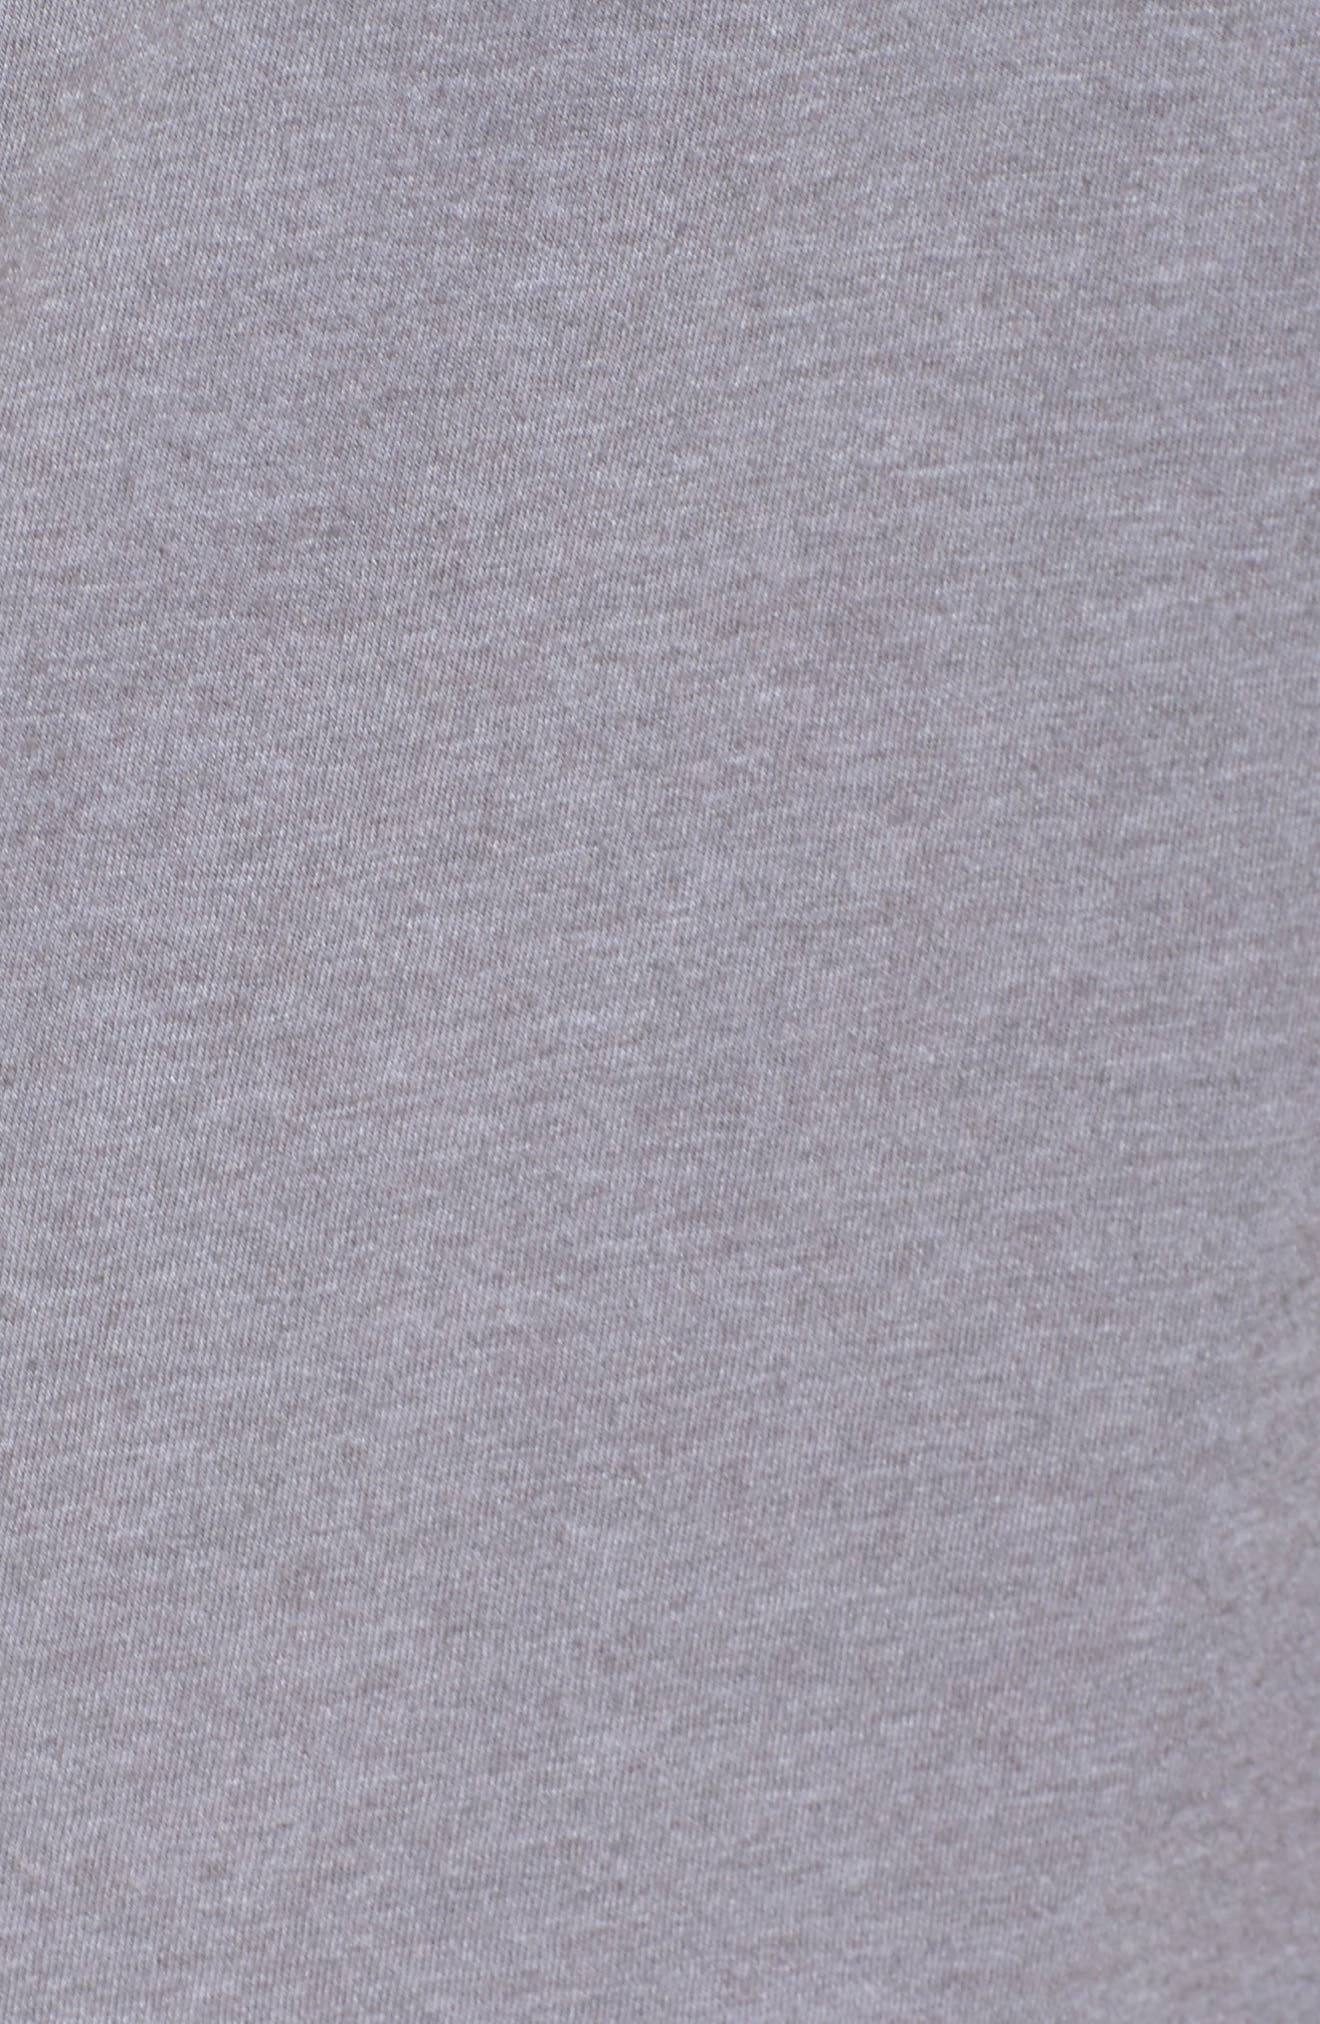 Patgonia Fitz Roy Bison Tee,                             Alternate thumbnail 5, color,                             Narwhal Grey